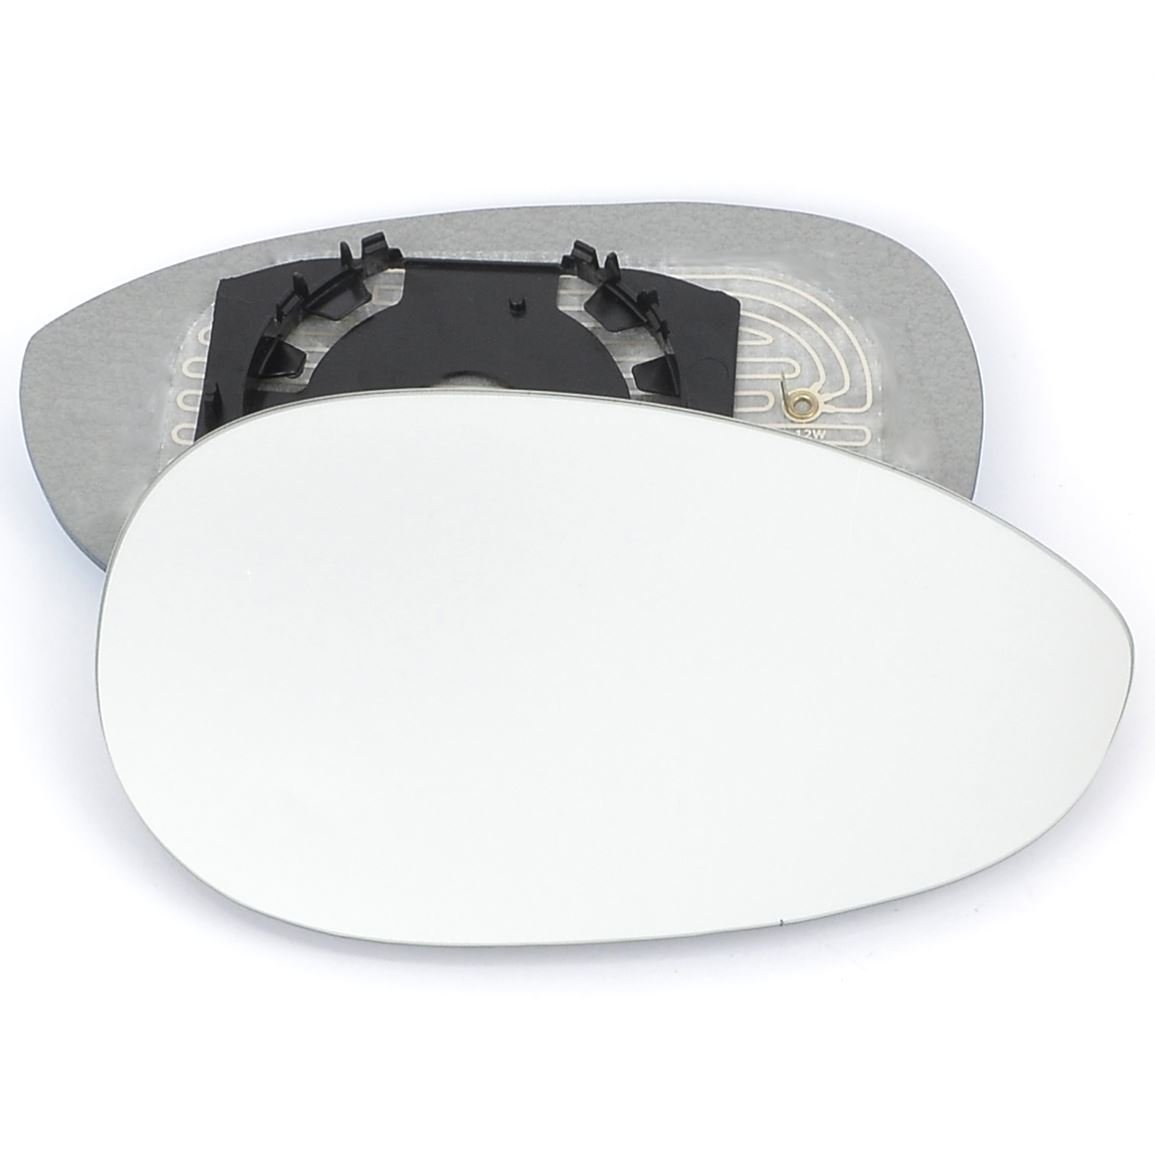 Driver right hand side wing door mirror convex glass heated with backing plate